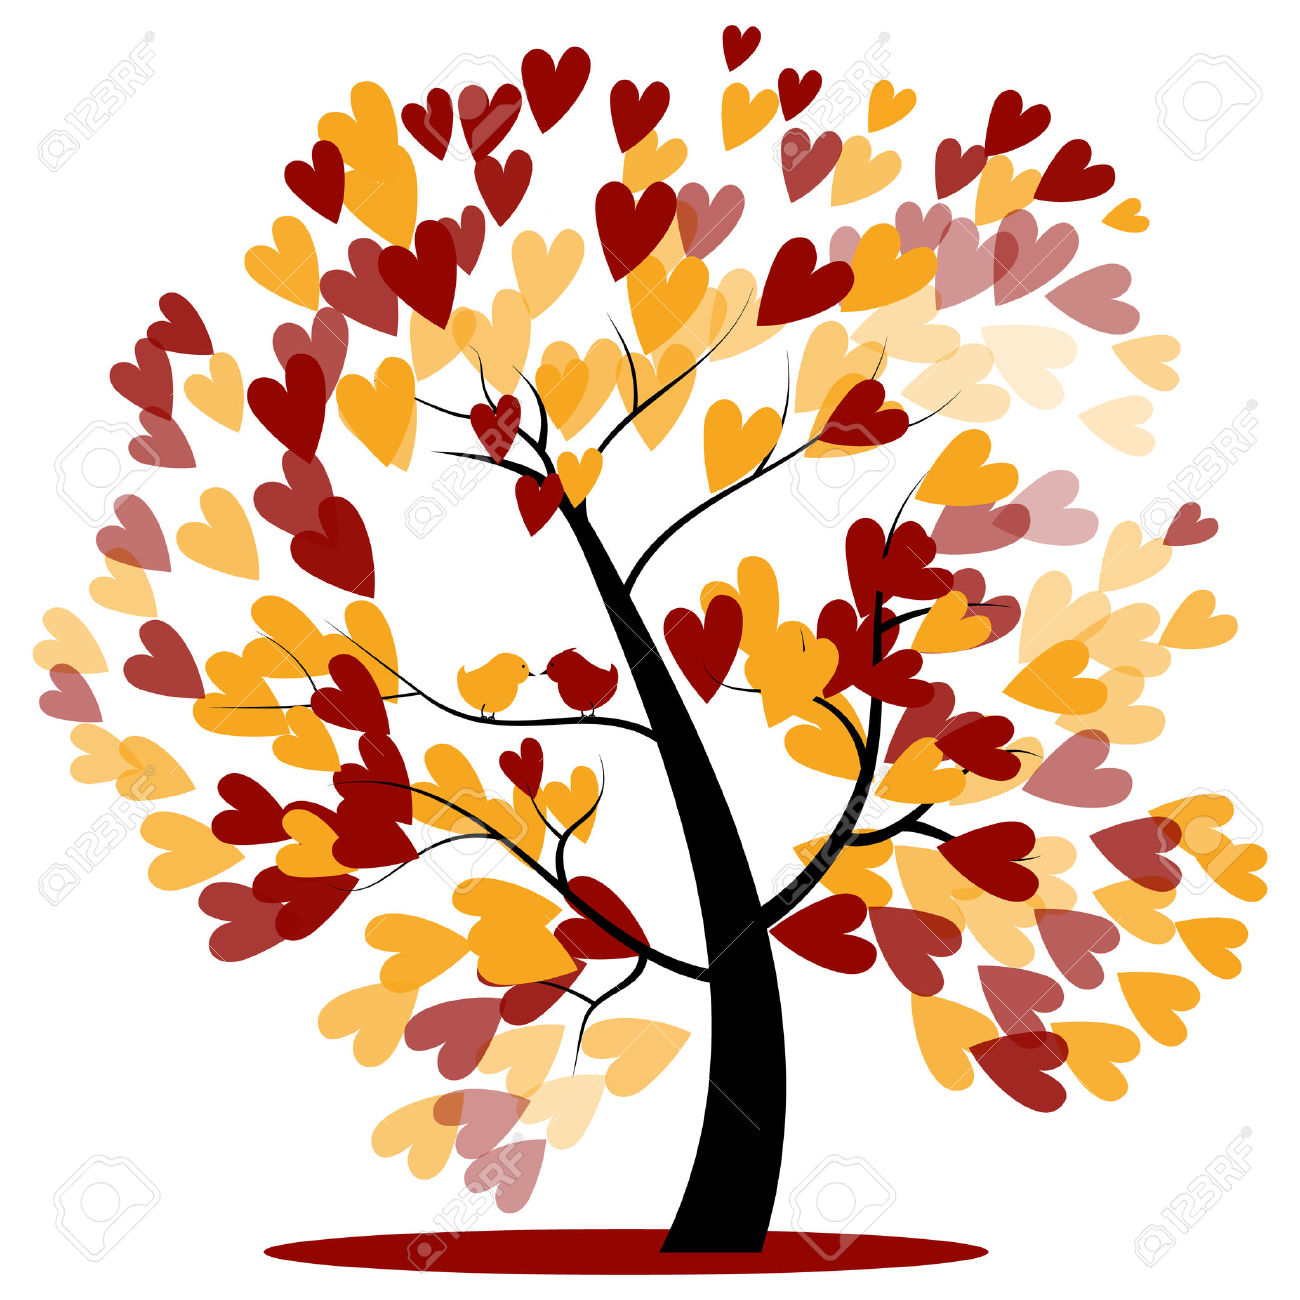 Autumn Wedding Tree Of Red And Yellow Hearts Hanging On The.